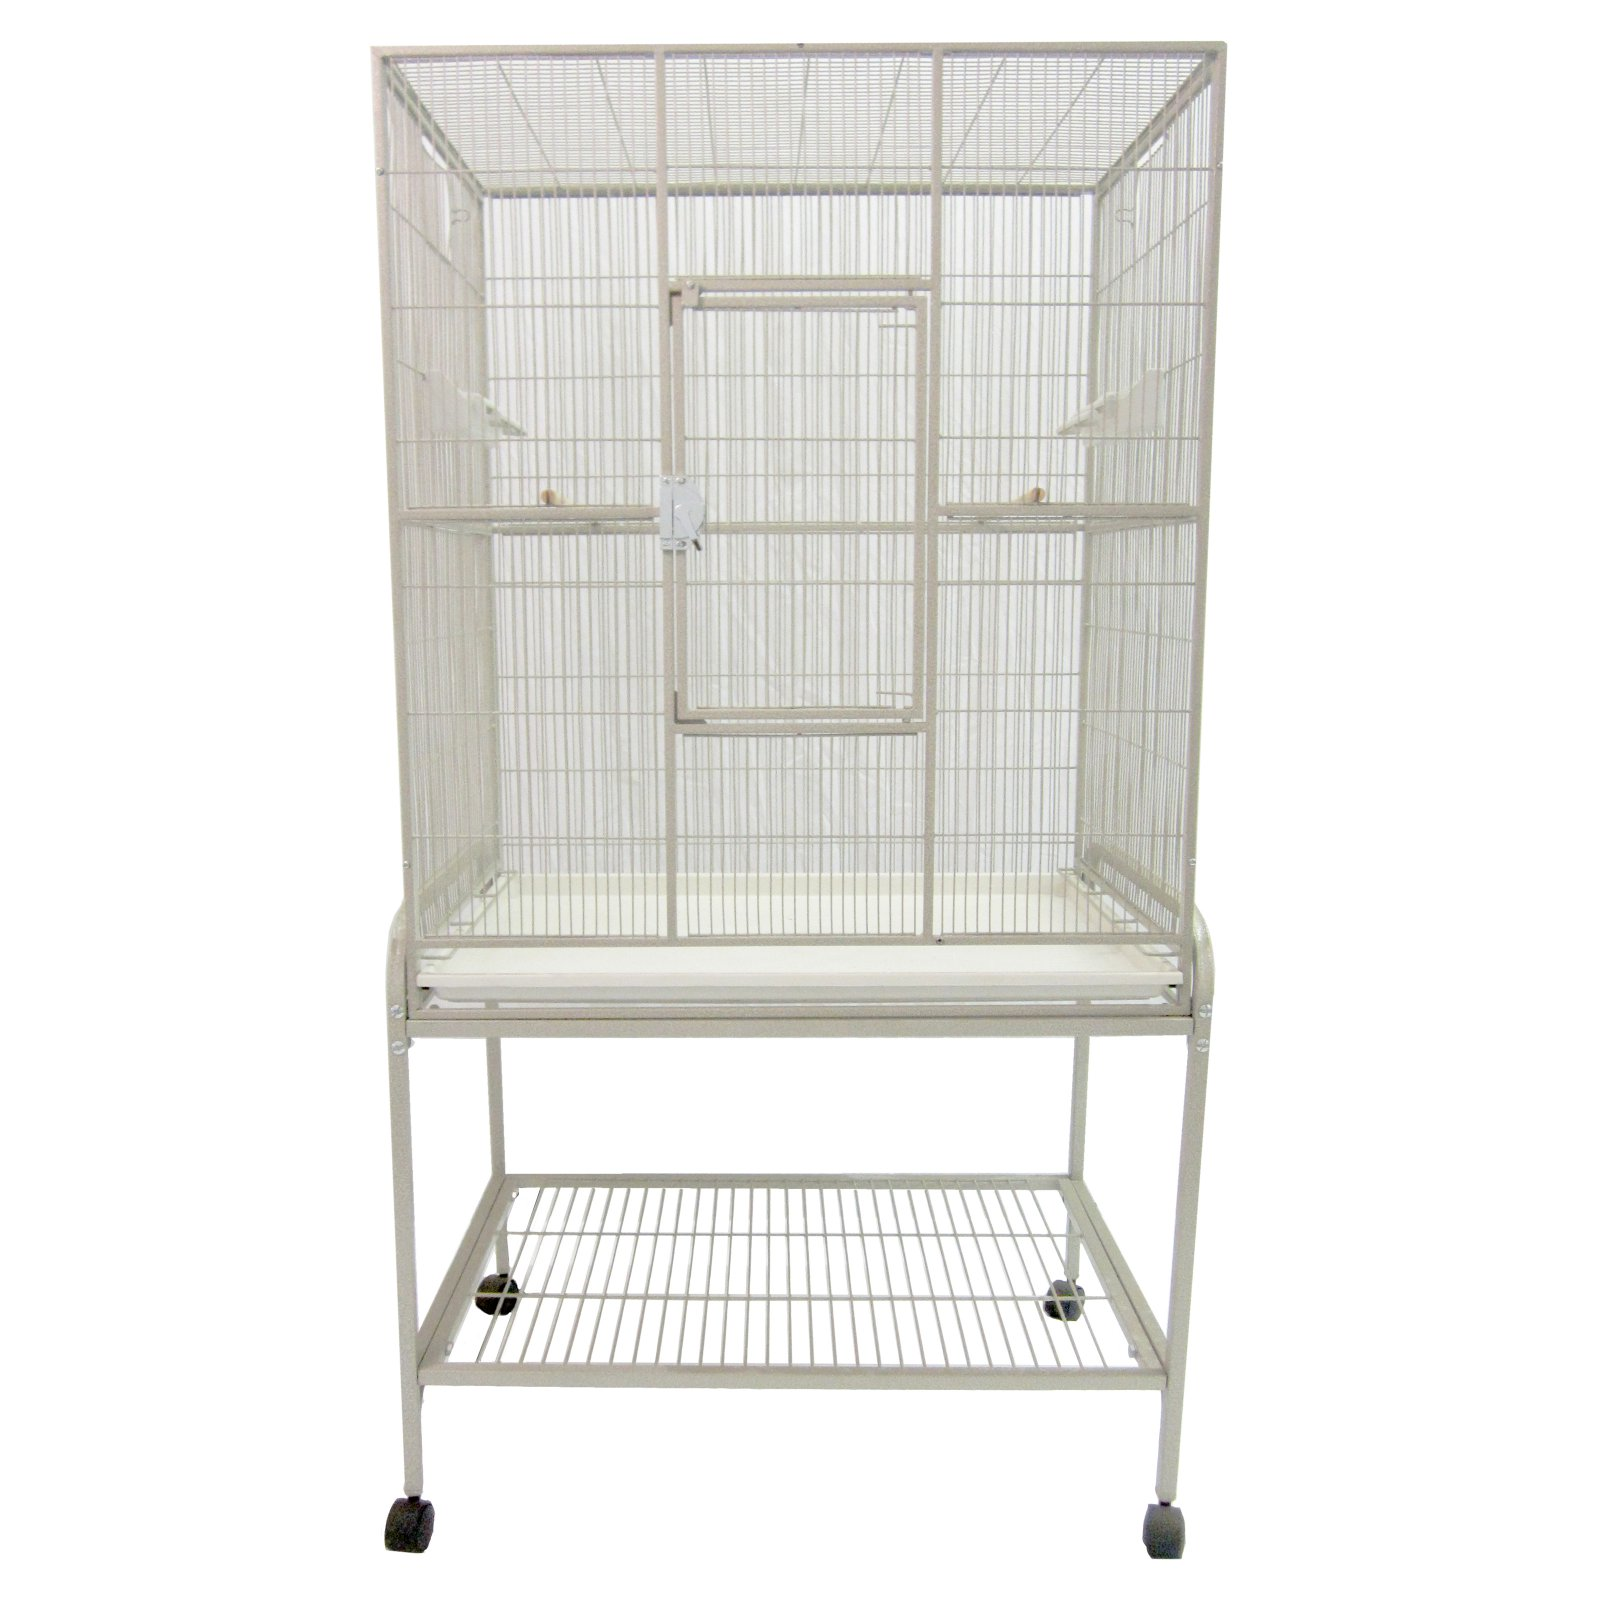 """A and E Cage Co. 35"""" Wrought Iron Flight Bird Cage"""